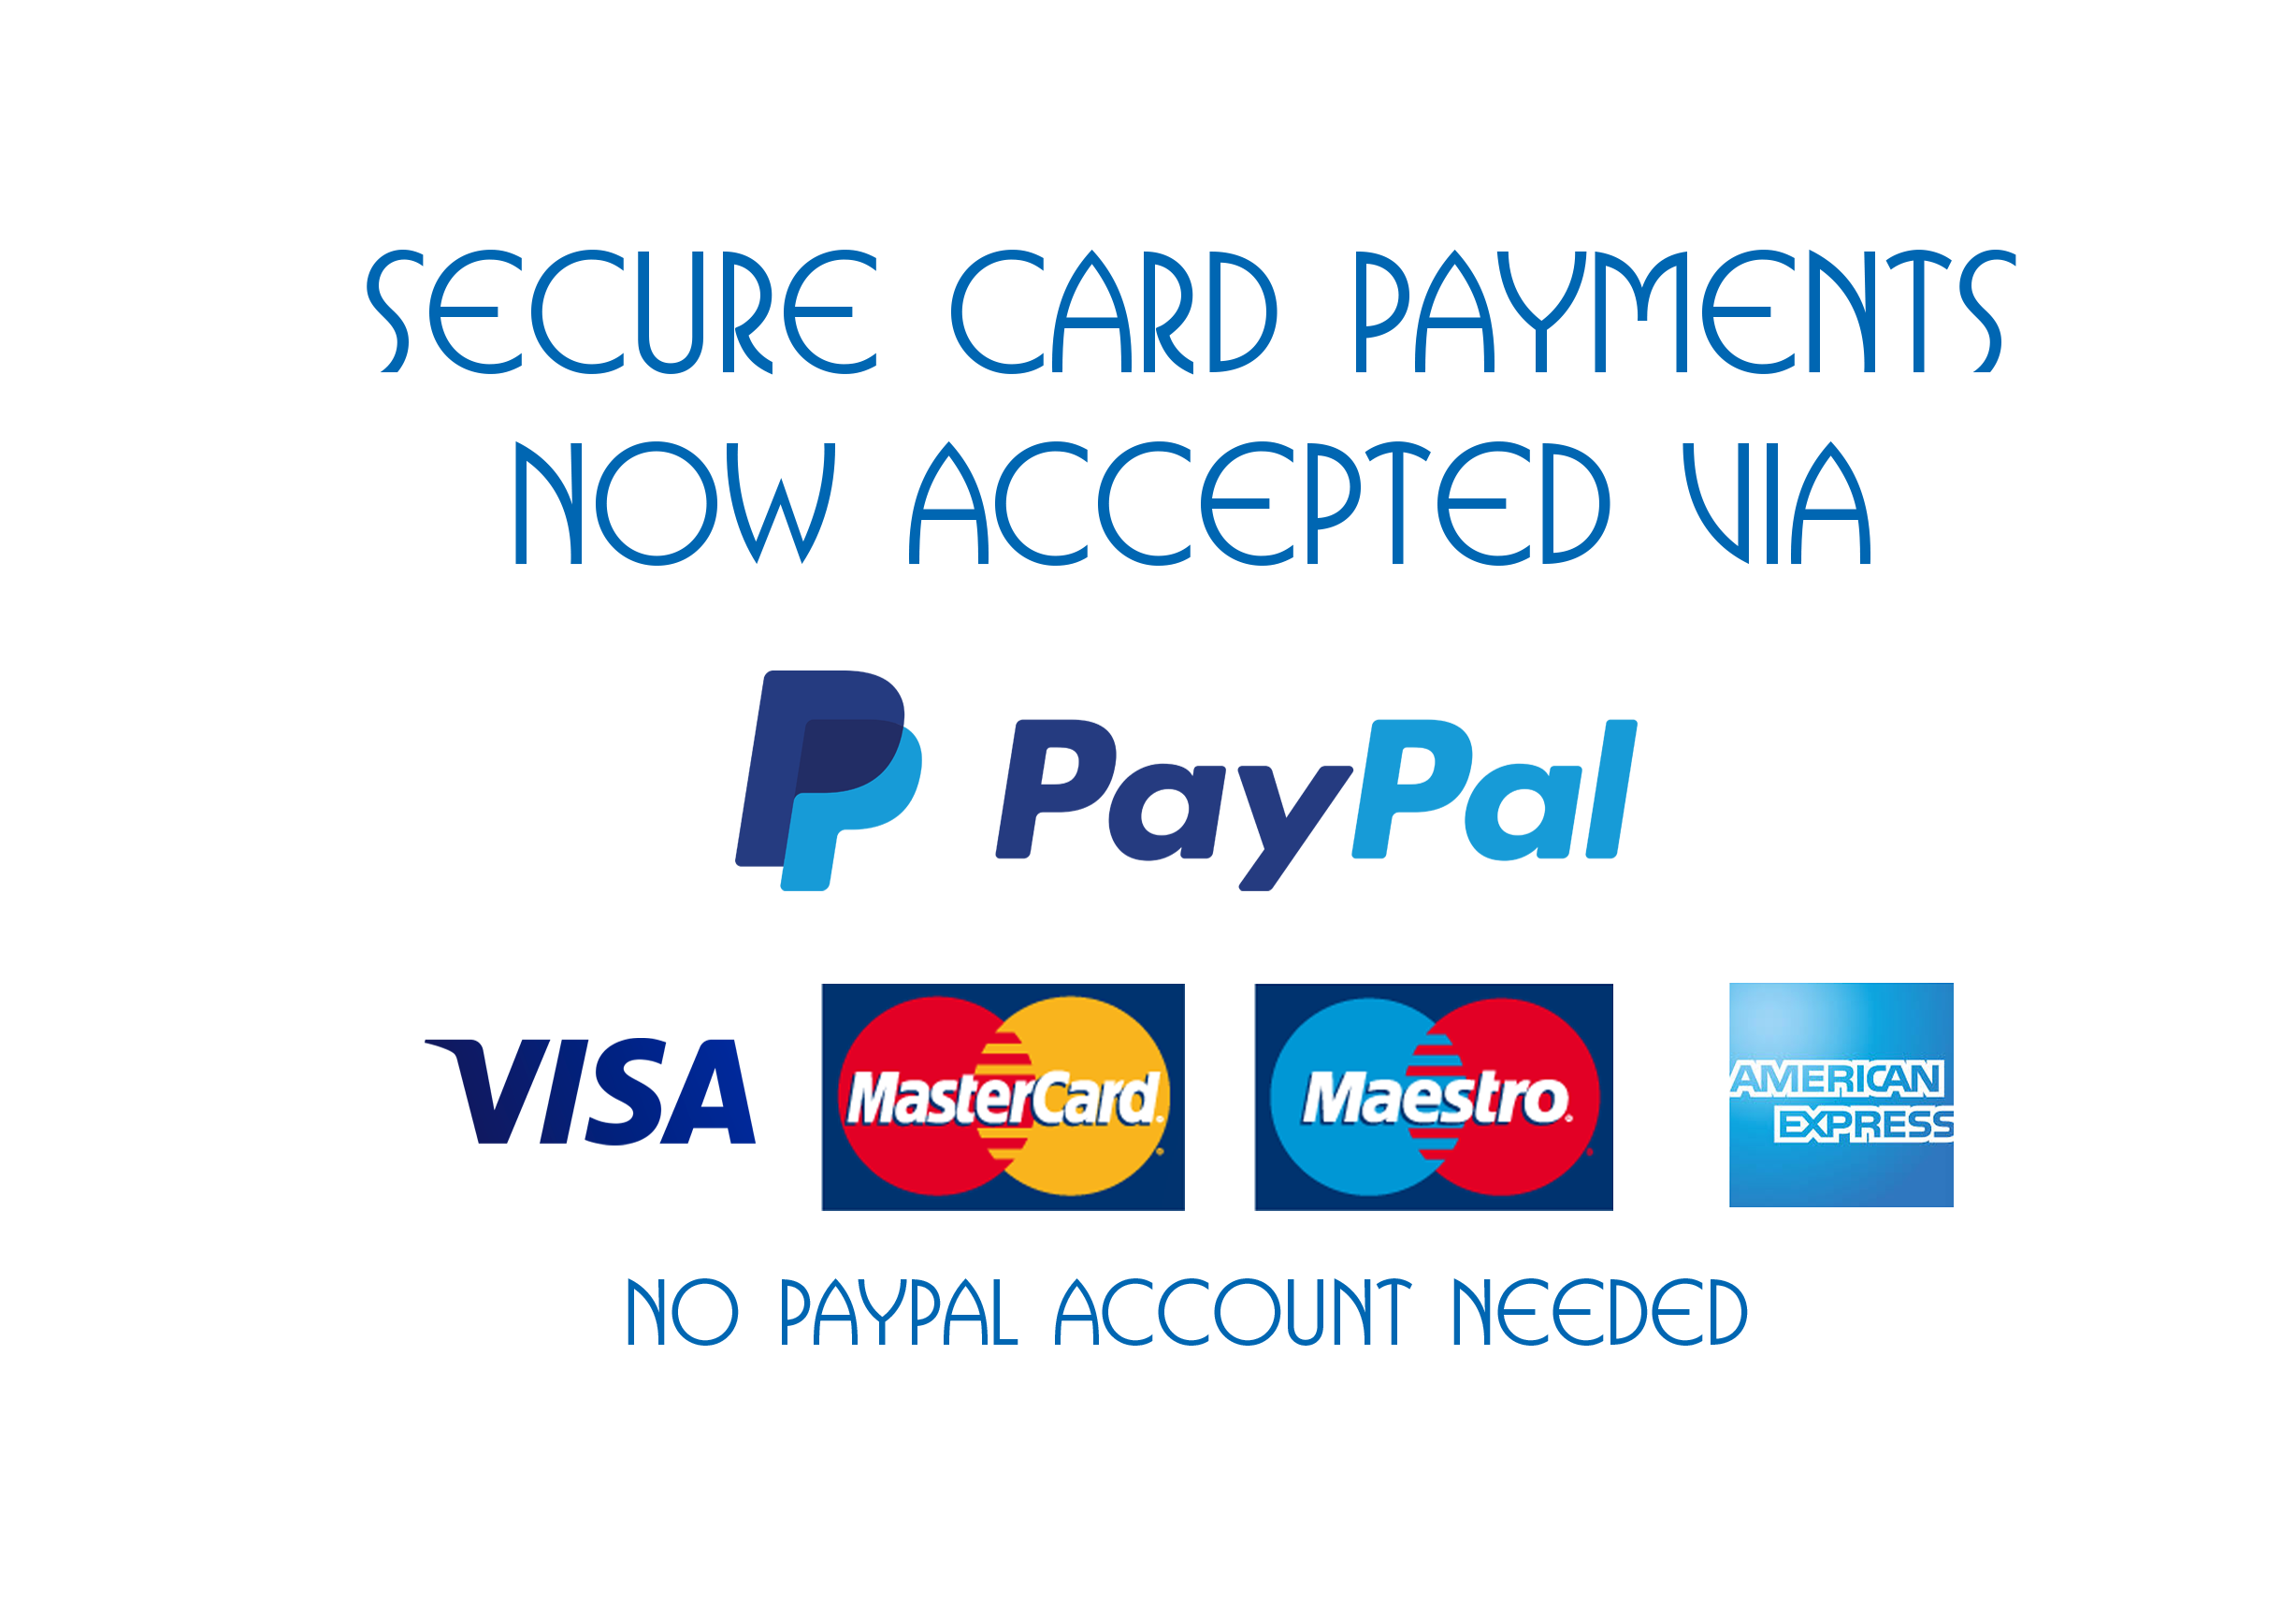 Card payment via PayPal